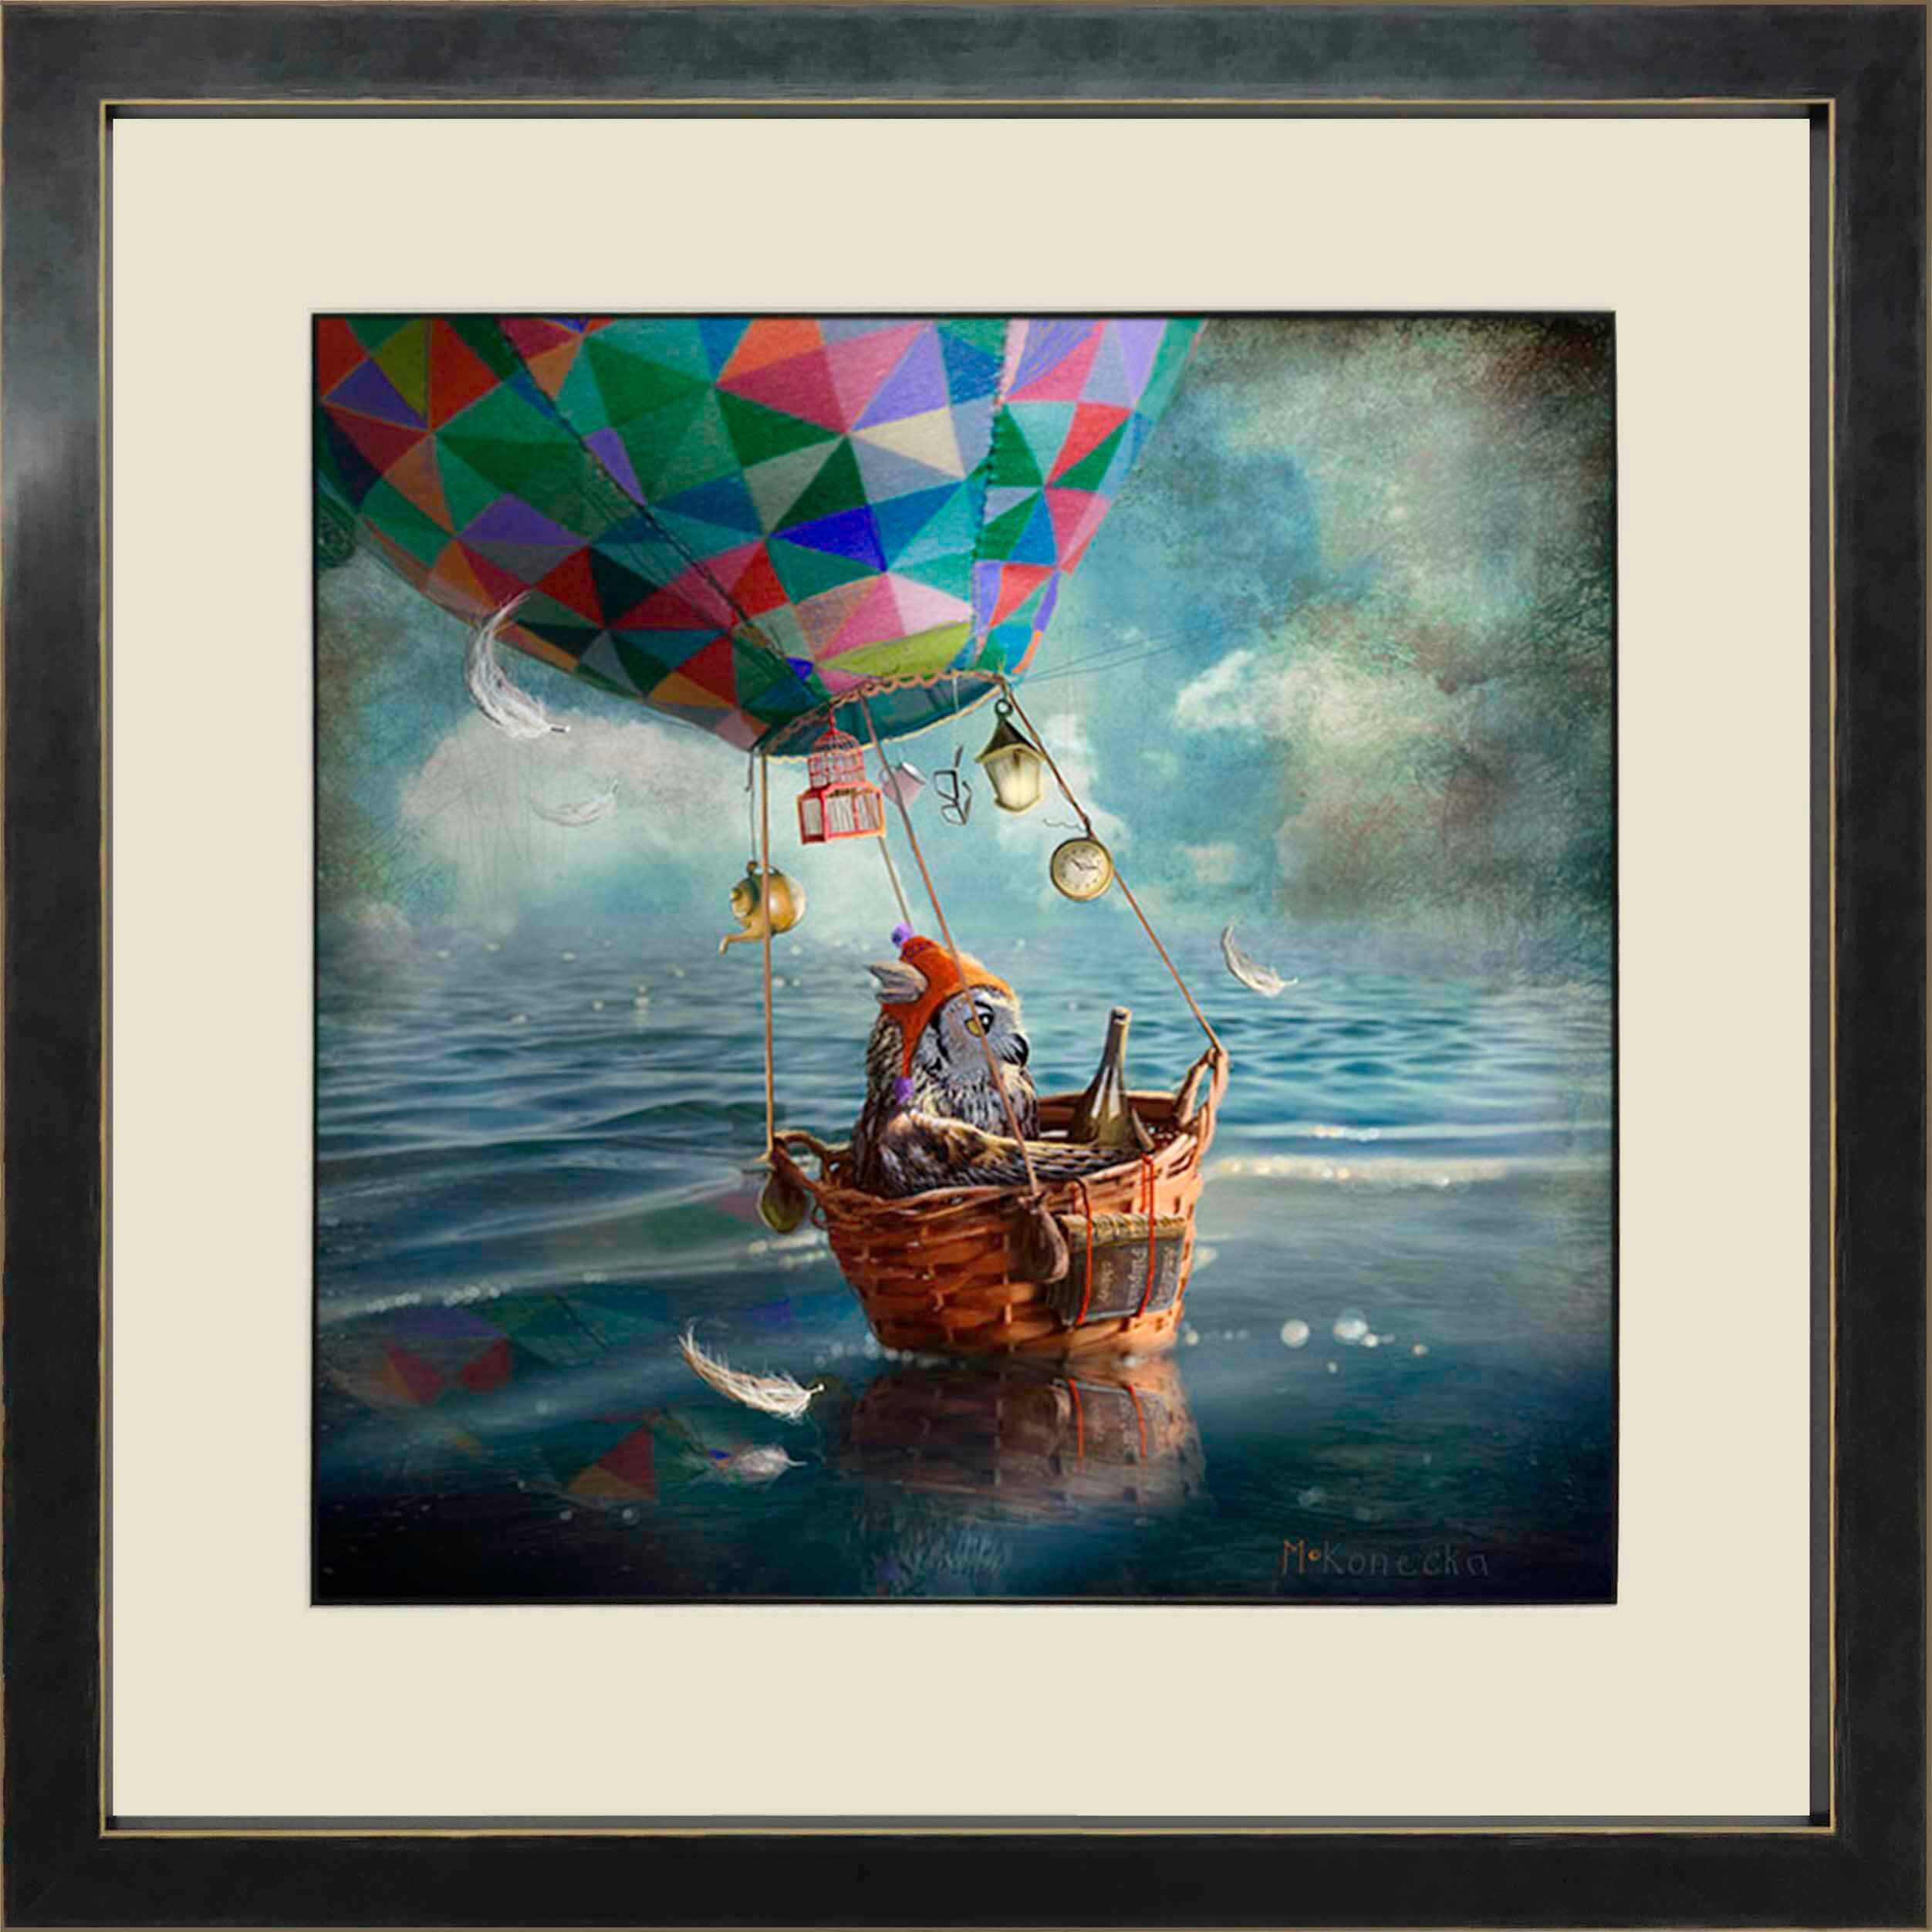 The Balloonist by Matylda Konecha